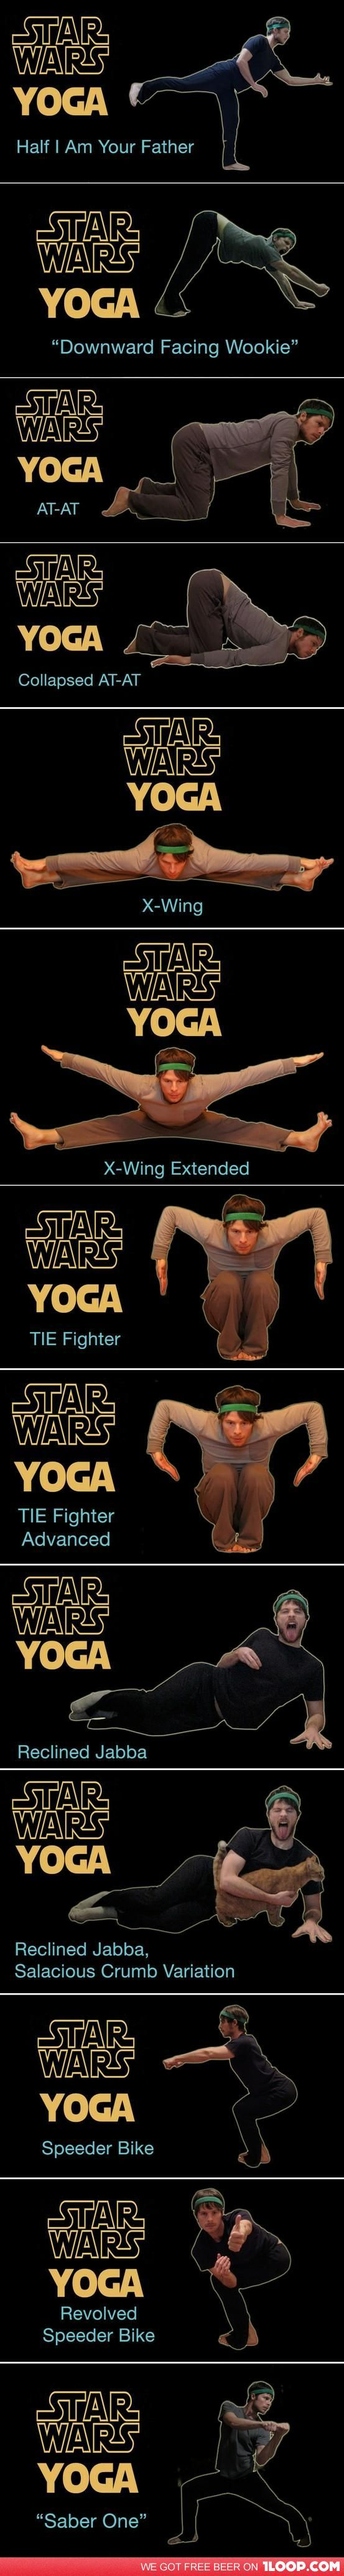 Star Wars Yoga | Loved and pinned by www.downdogboutique.com